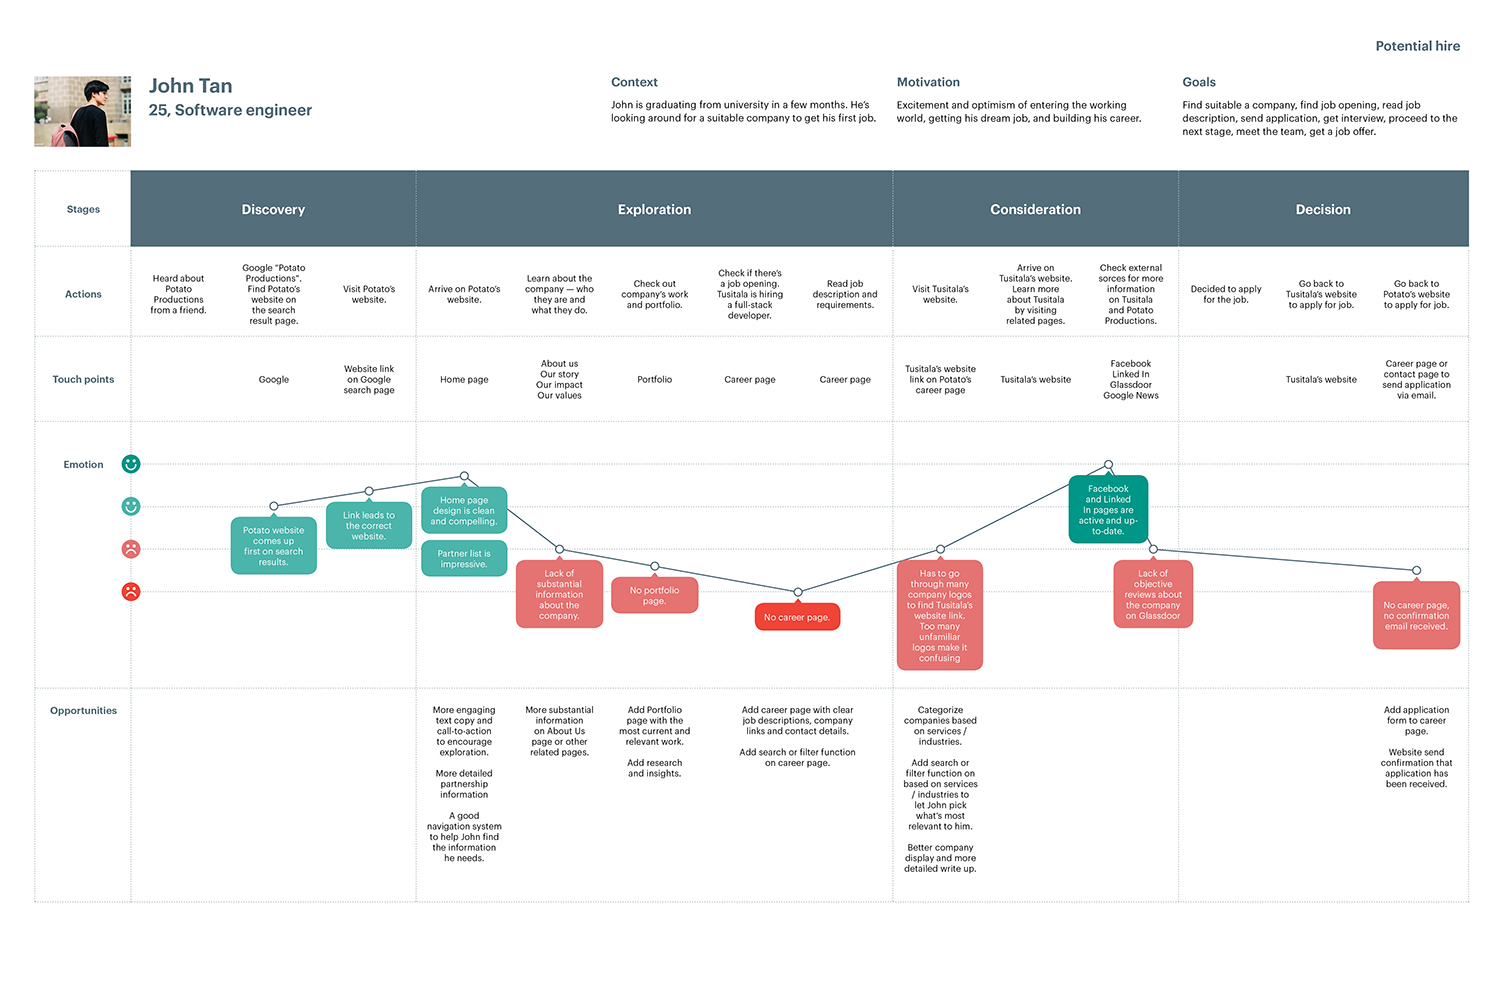 User journey map for potential hires